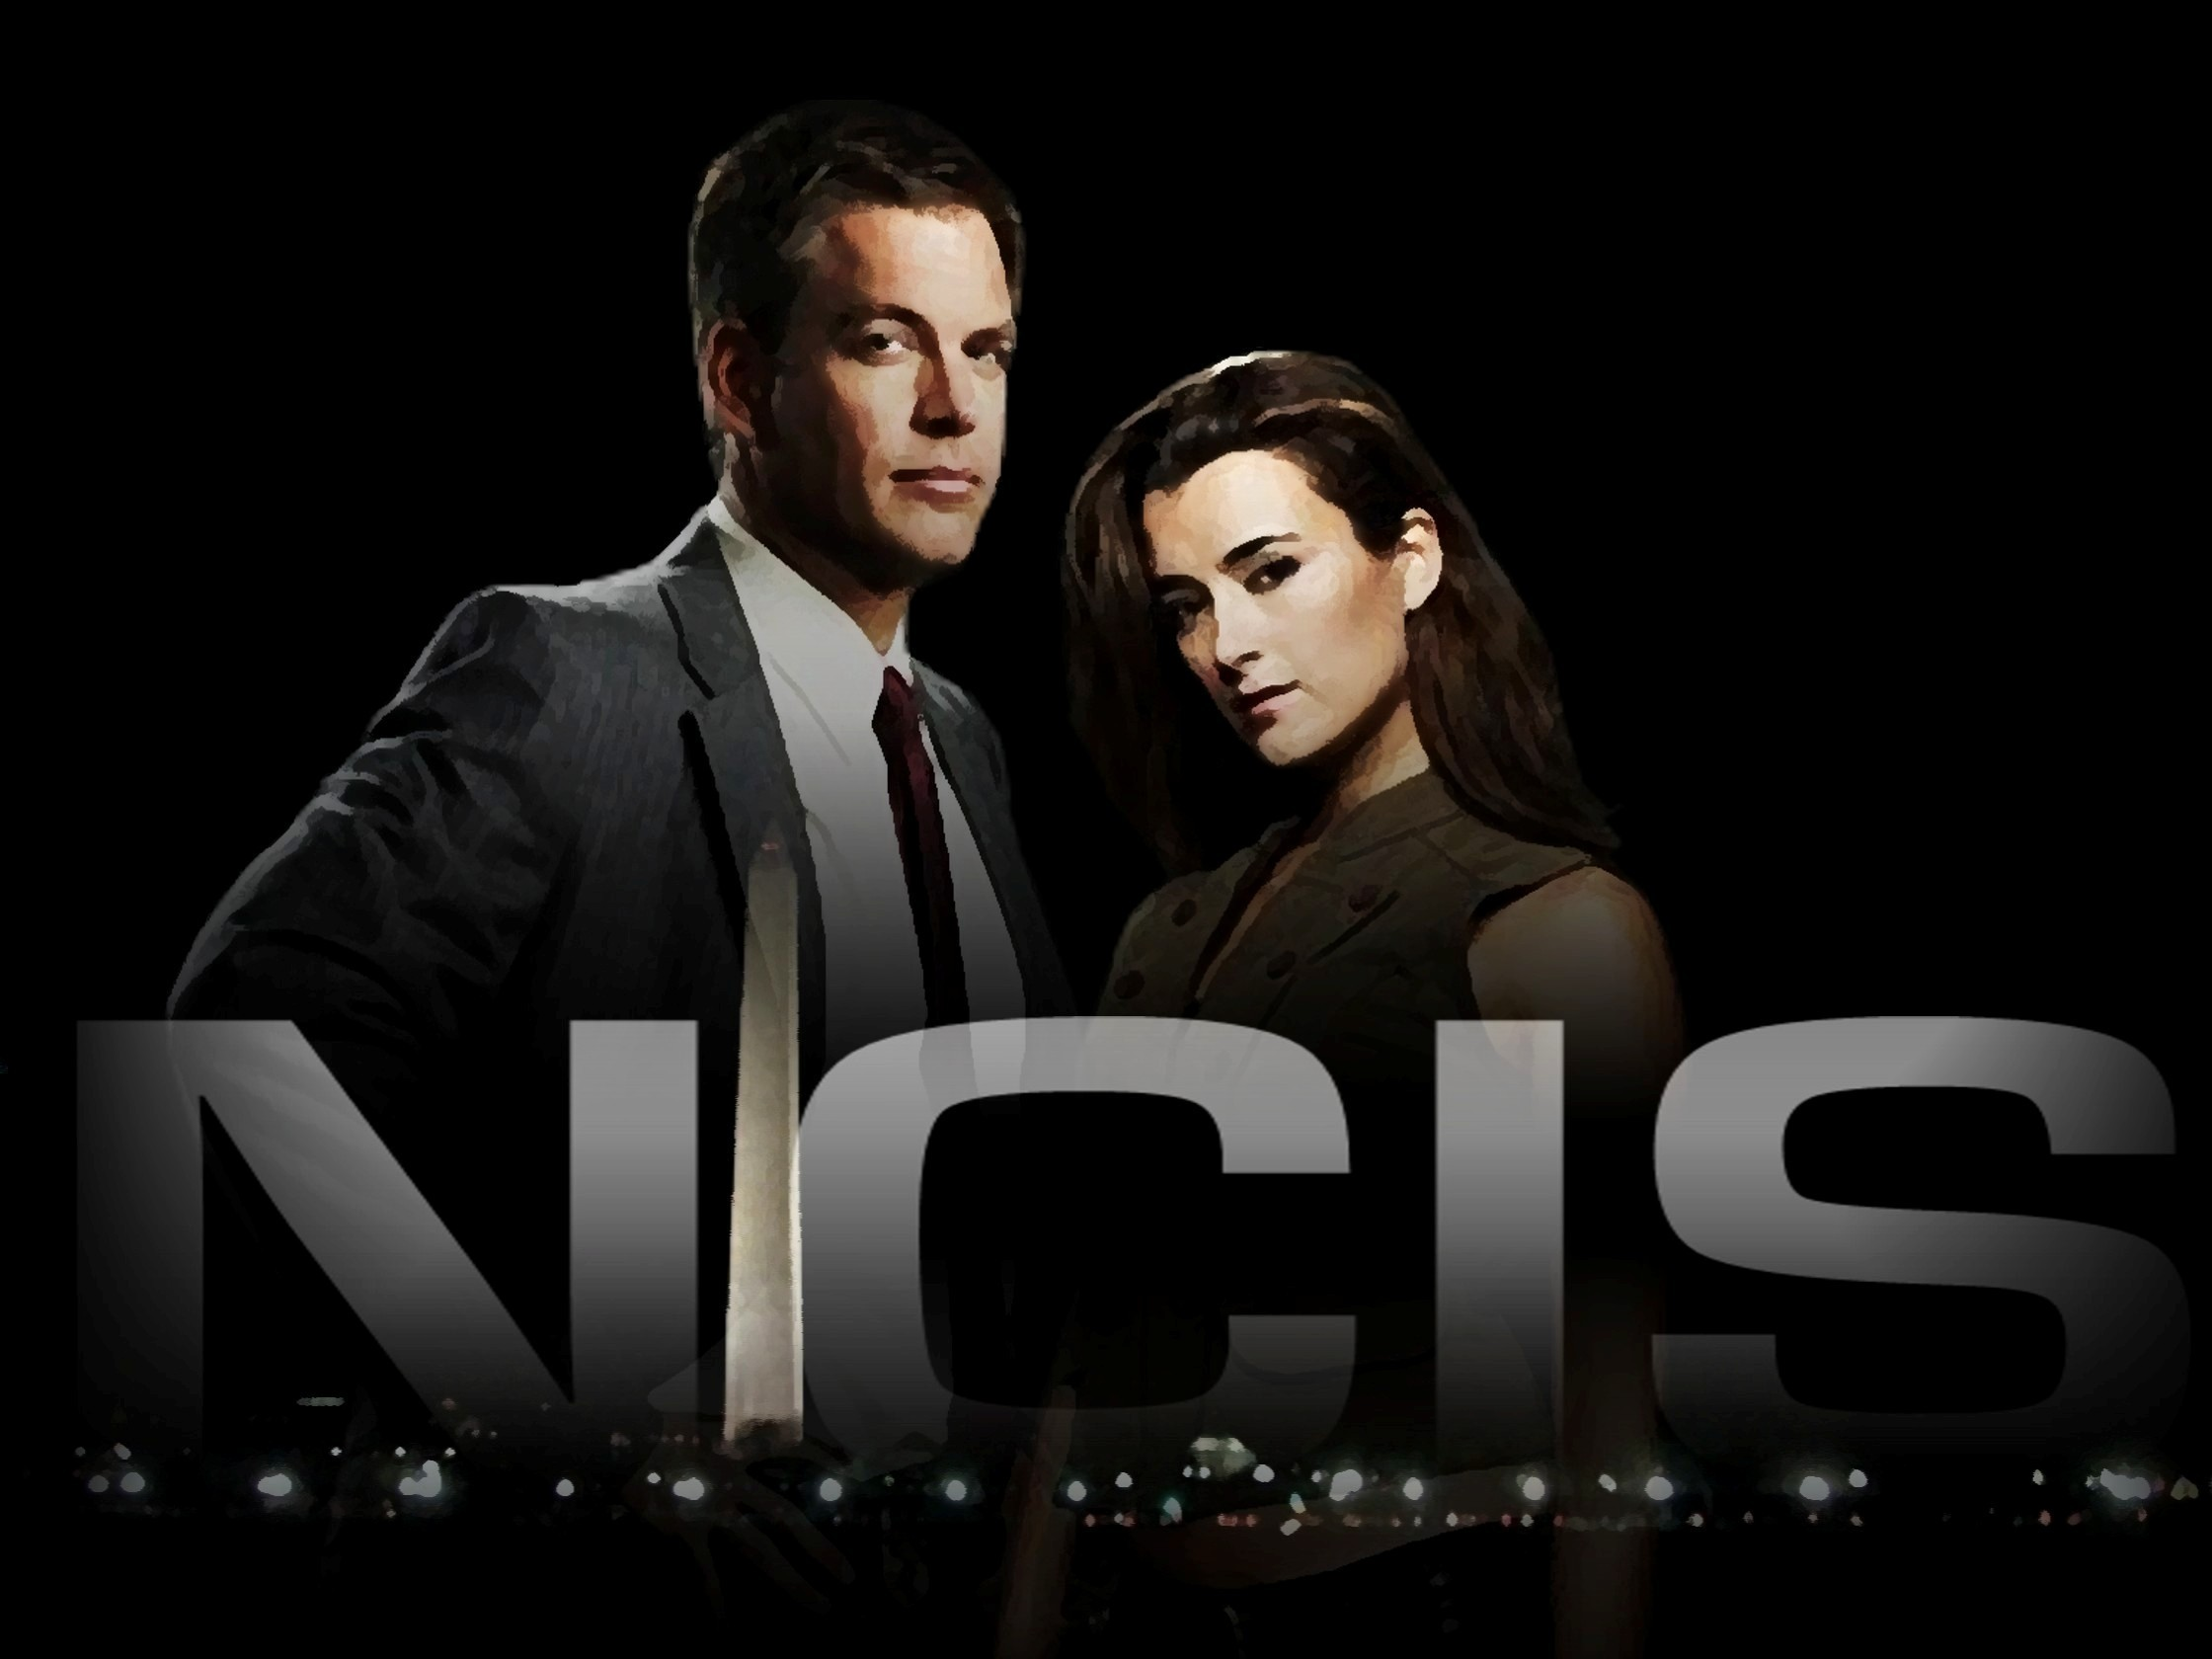 Ncis Fanfiction Tony And Ziva Secretly Hookup